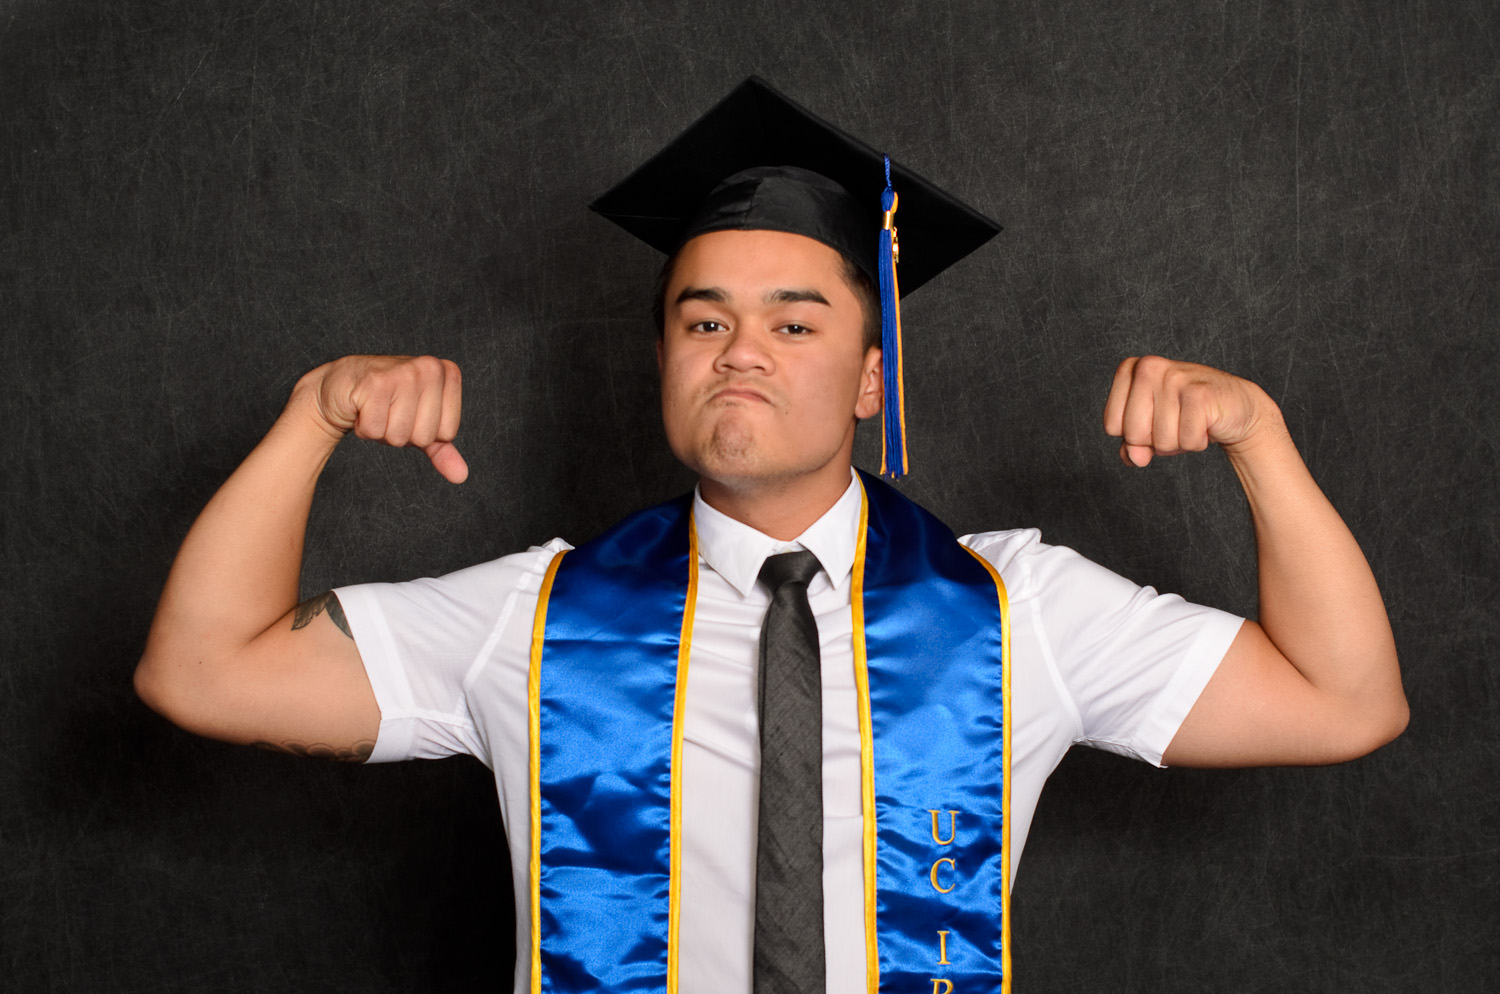 Bryan-Miraflor-Photography-Grad-Portraits-Ryan-James-20130530-0012.jpg